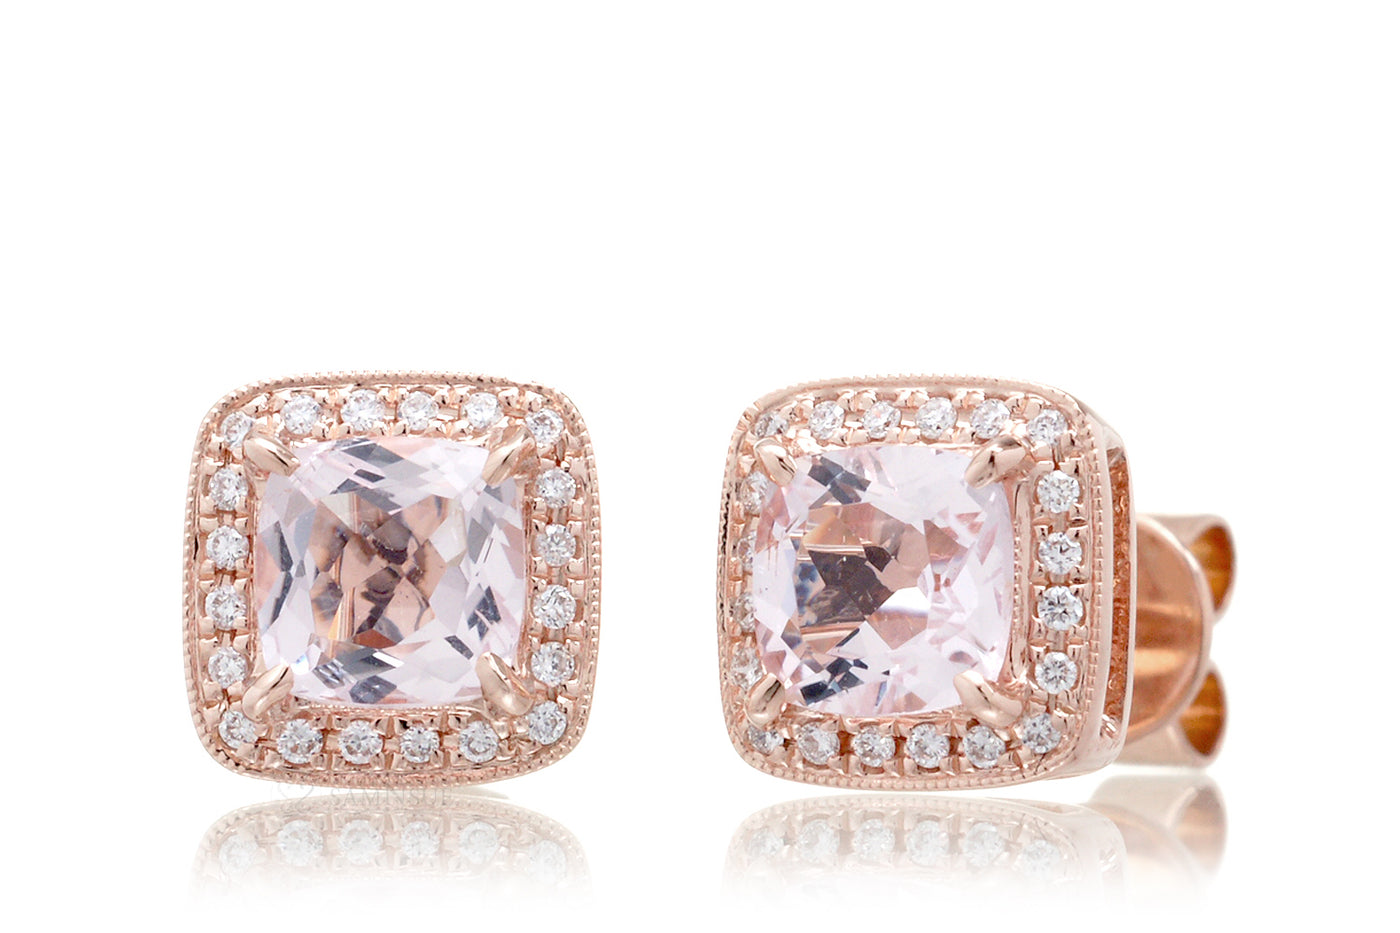 Morganite cushion 5x5 solitaire diamond halo stud earrings rose gold